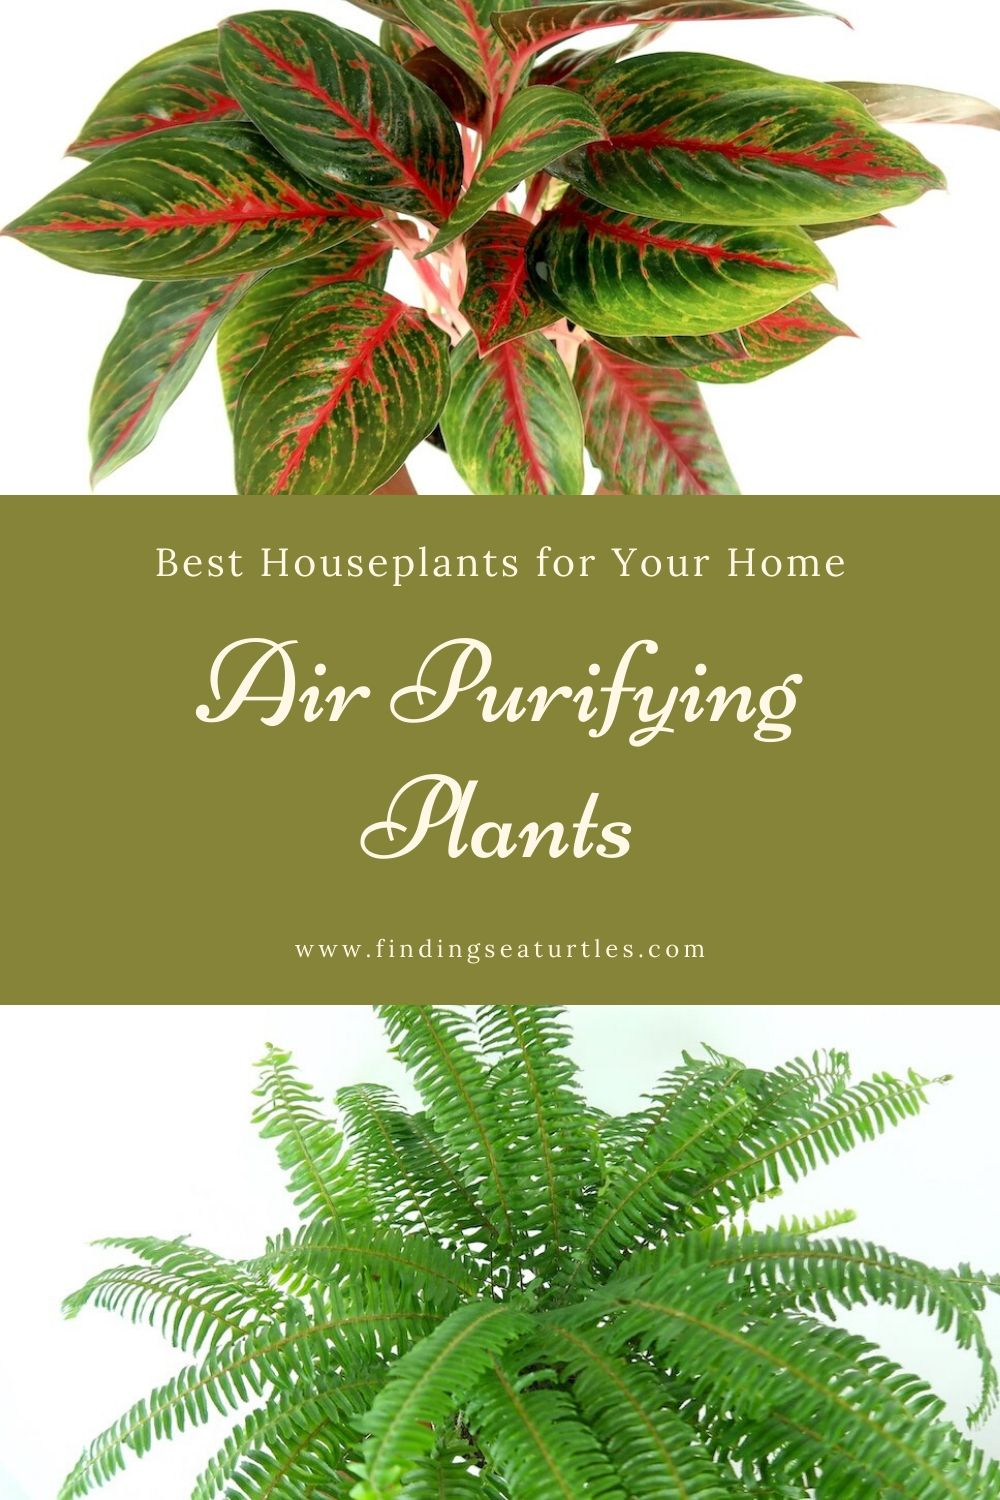 Best Houseplants for Your Home Air Purifying Plants #HousePlants #AirCleaningPlants #AirPurifyingPlants #AirPurifyingHousePlants #IndoorPlants #CleanAir